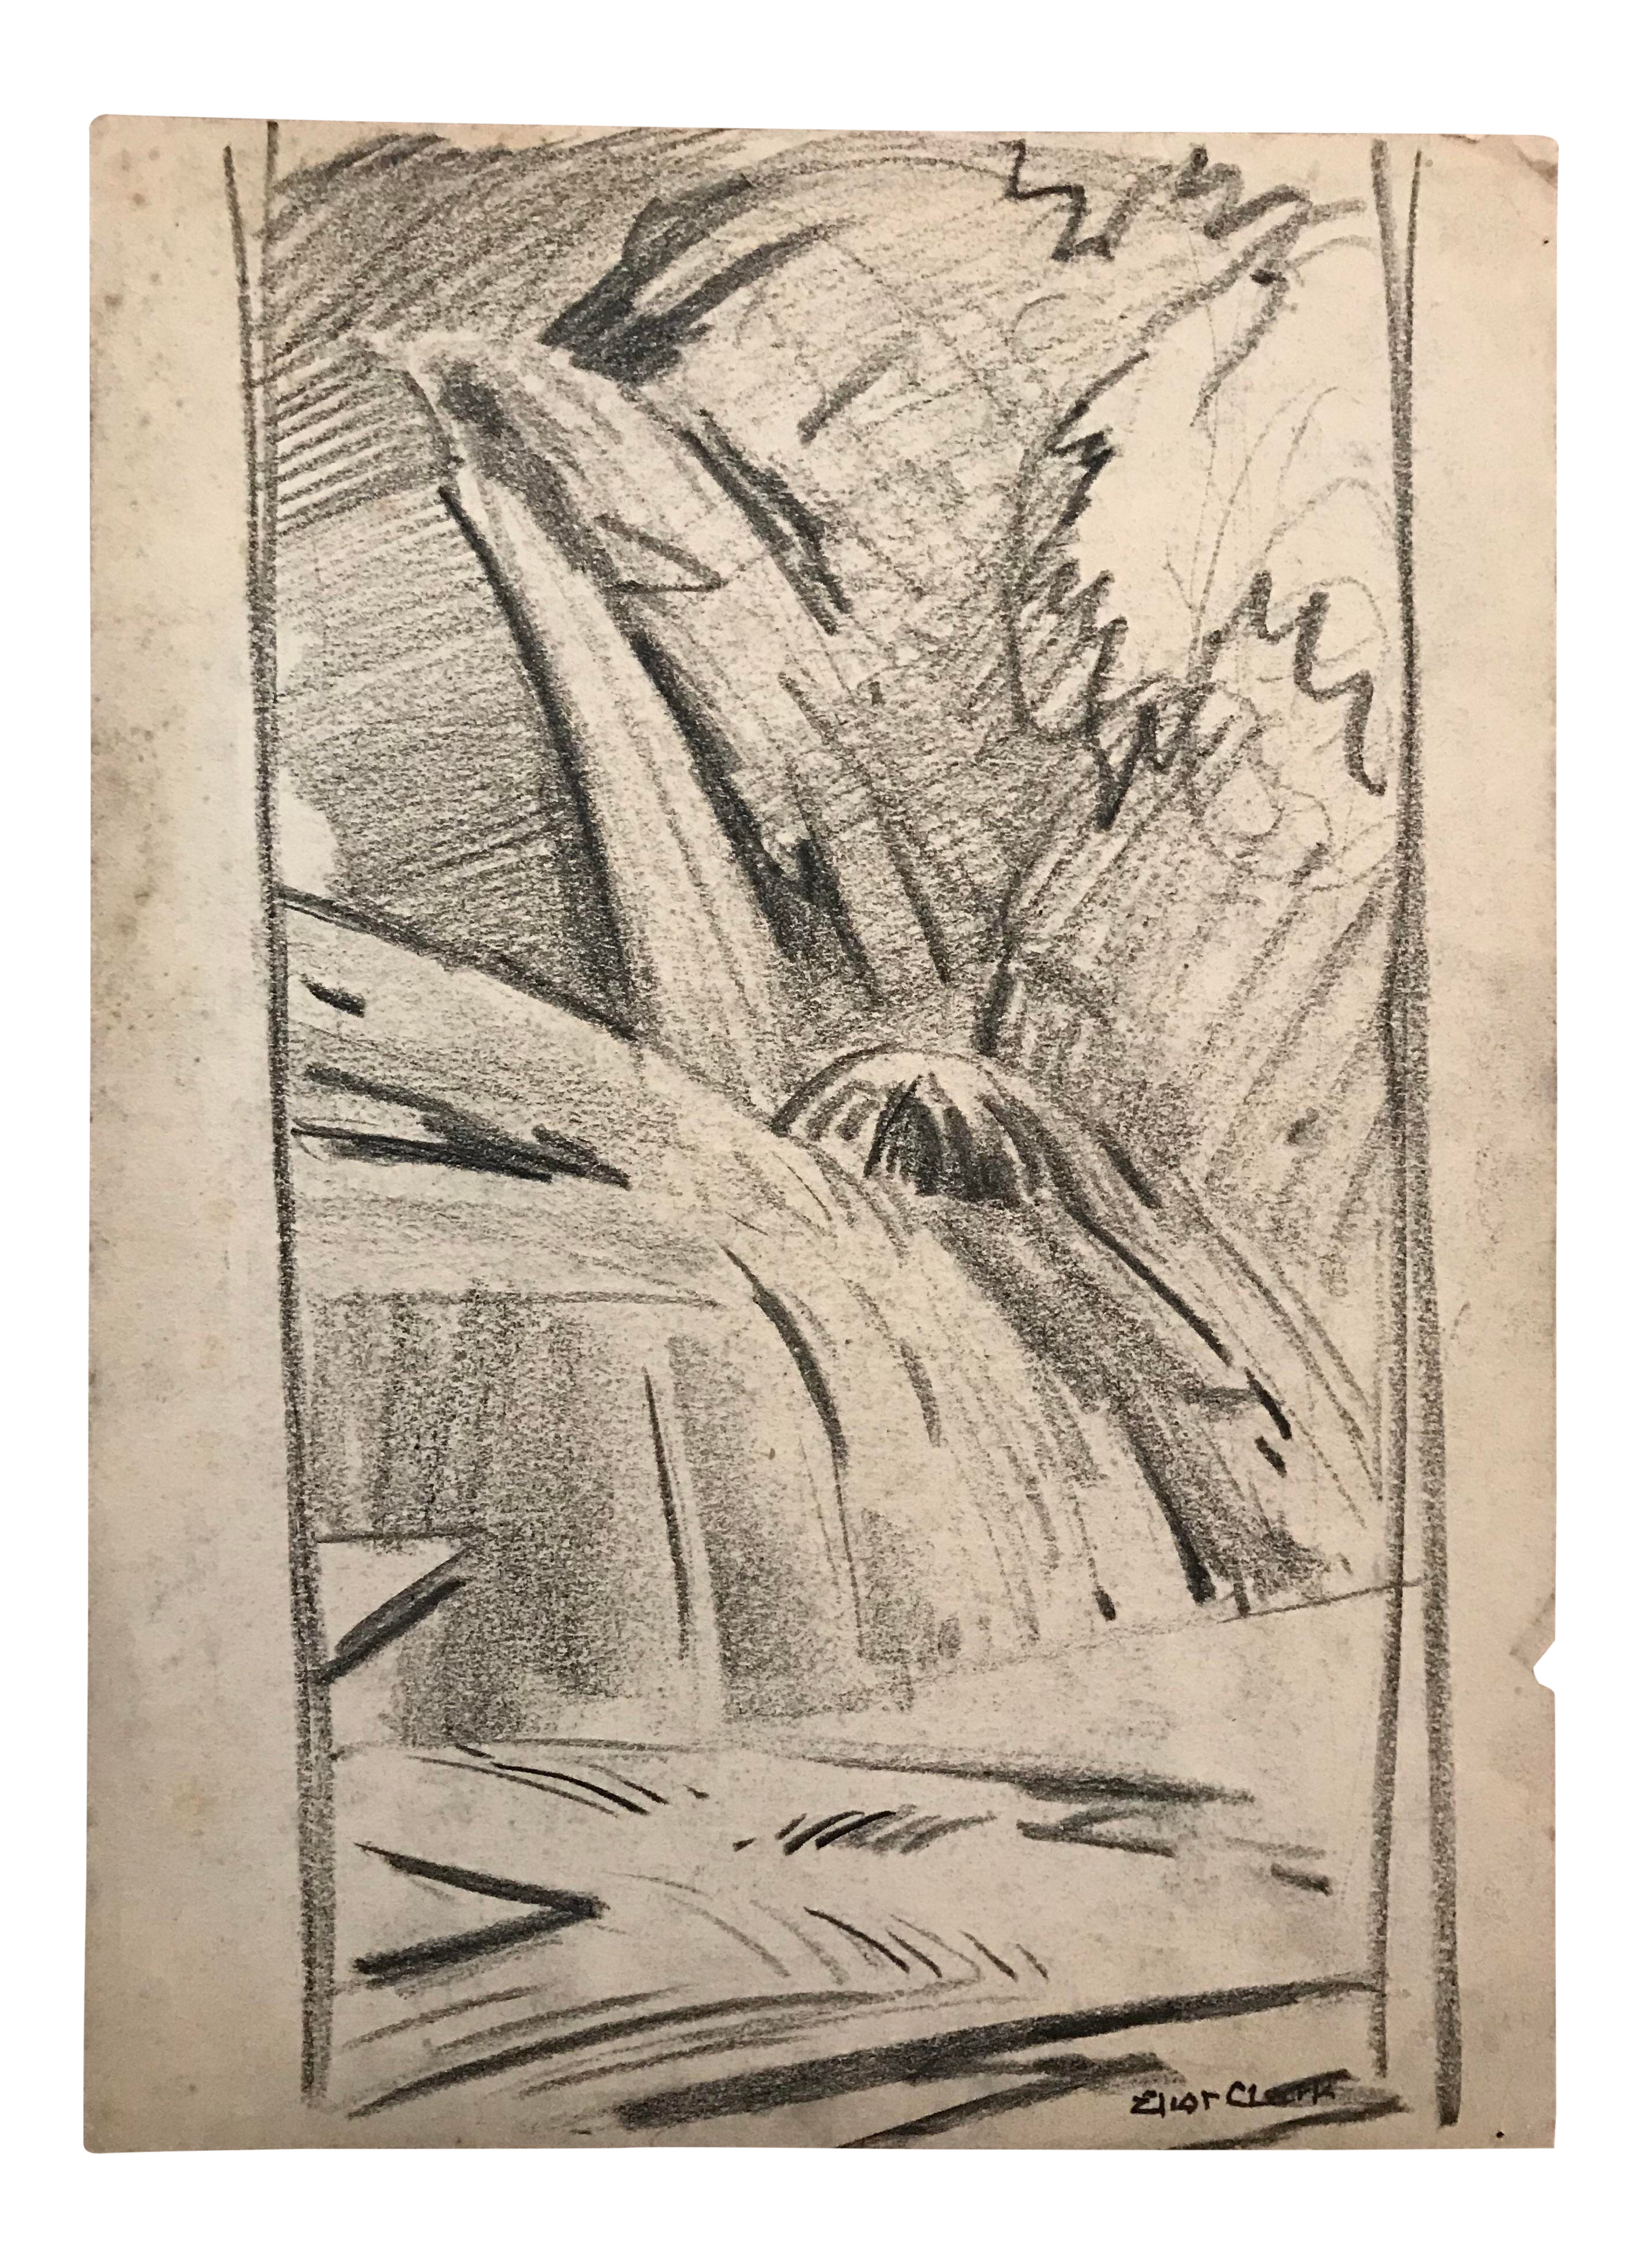 Waterfalls drawing pencil. S vintage eliot